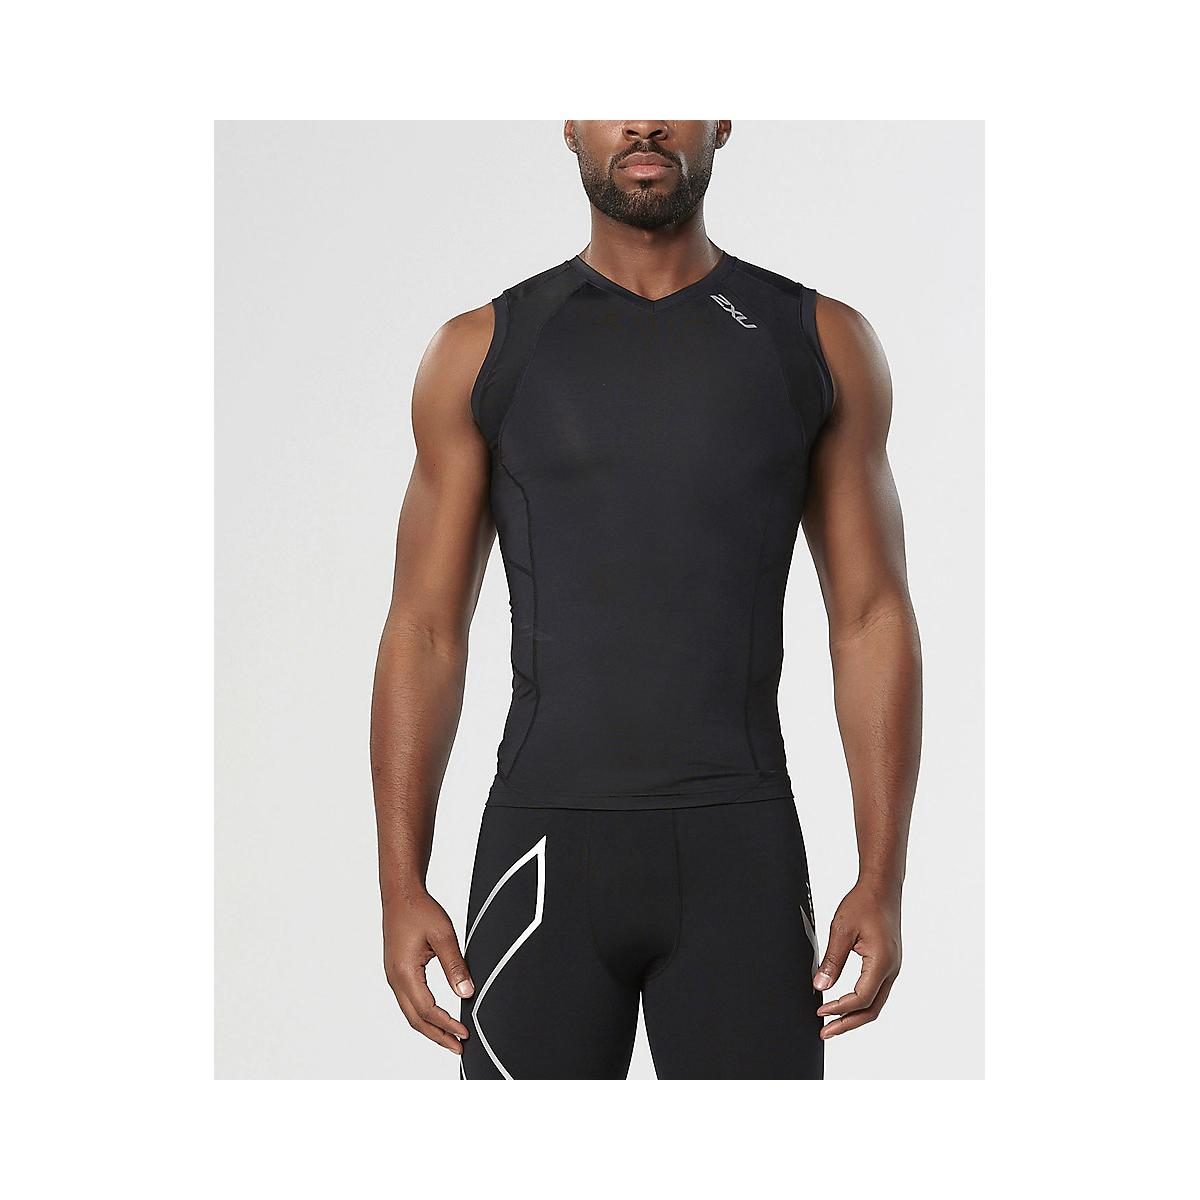 Men's 2XU�Compression Sleeveless Top